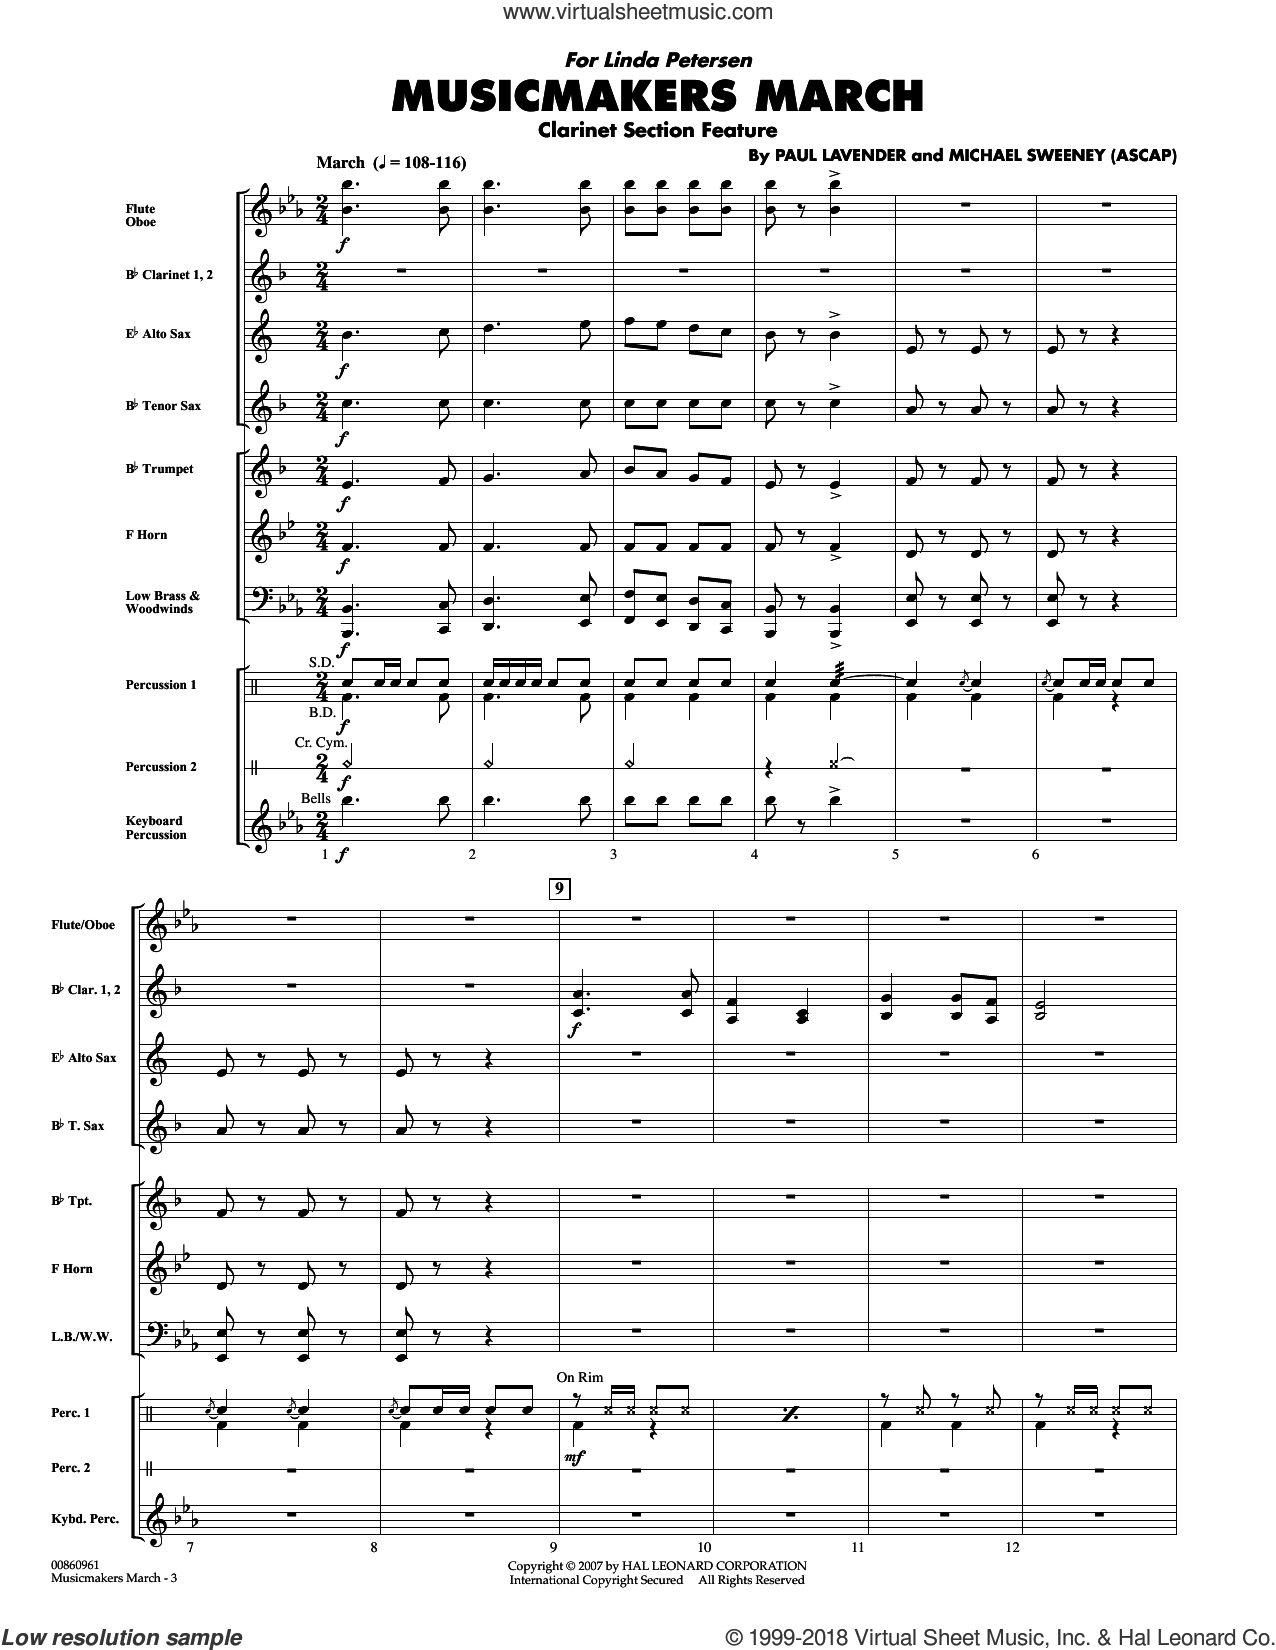 Musicmakers March (Clarinet Section Feature) (COMPLETE) sheet music for concert band by Michael Sweeney and Paul Lavender, intermediate skill level